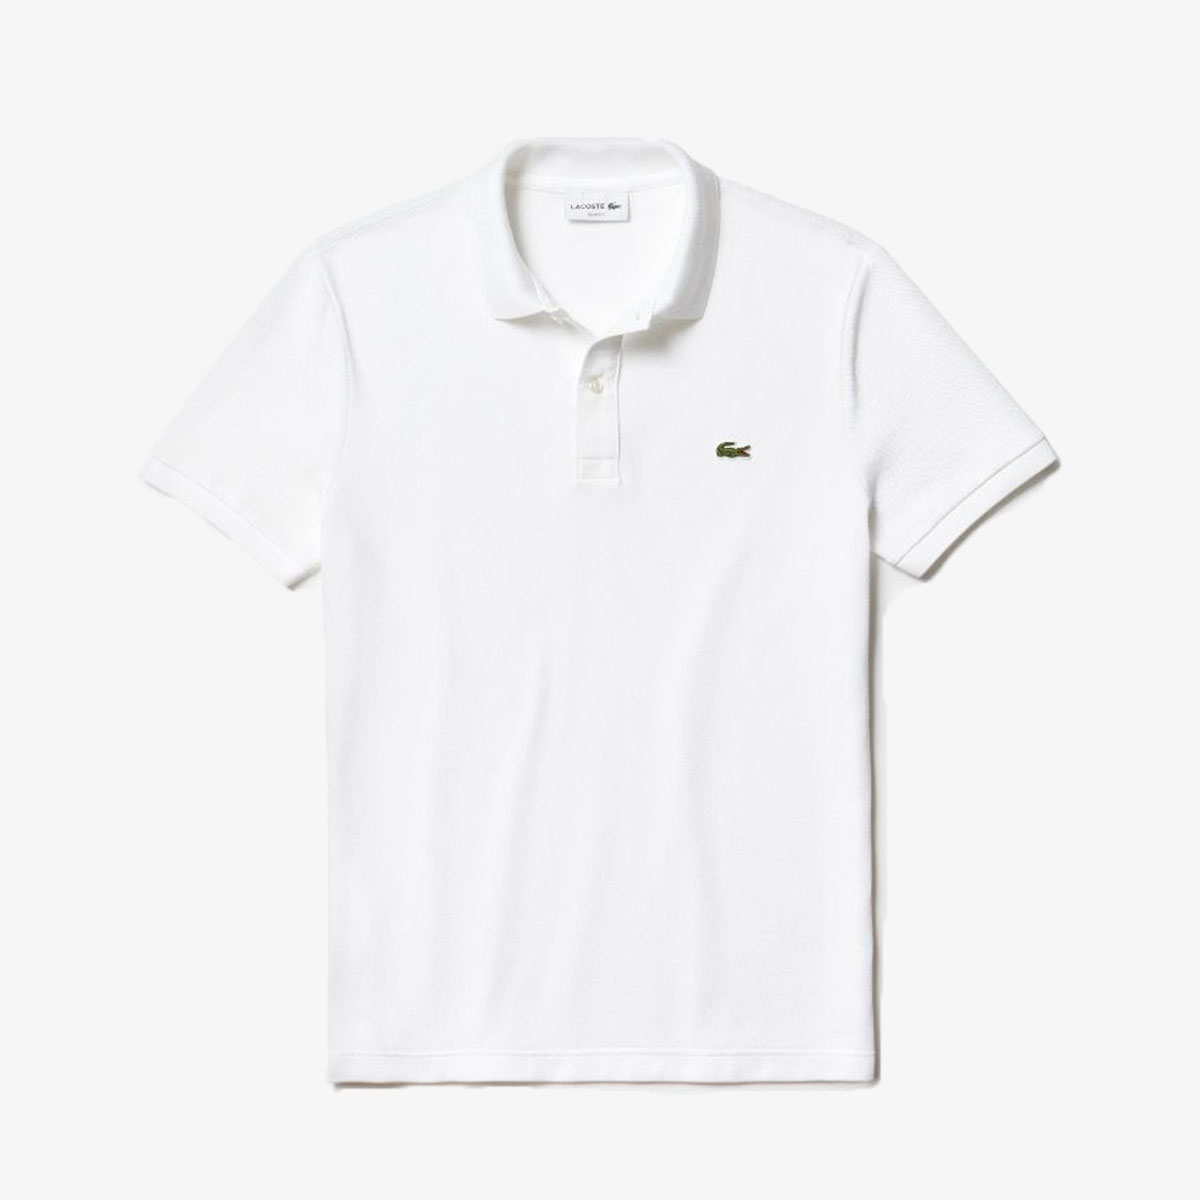 Lacoste Slim Fit Polo PH4012-001 Wit-S maat S